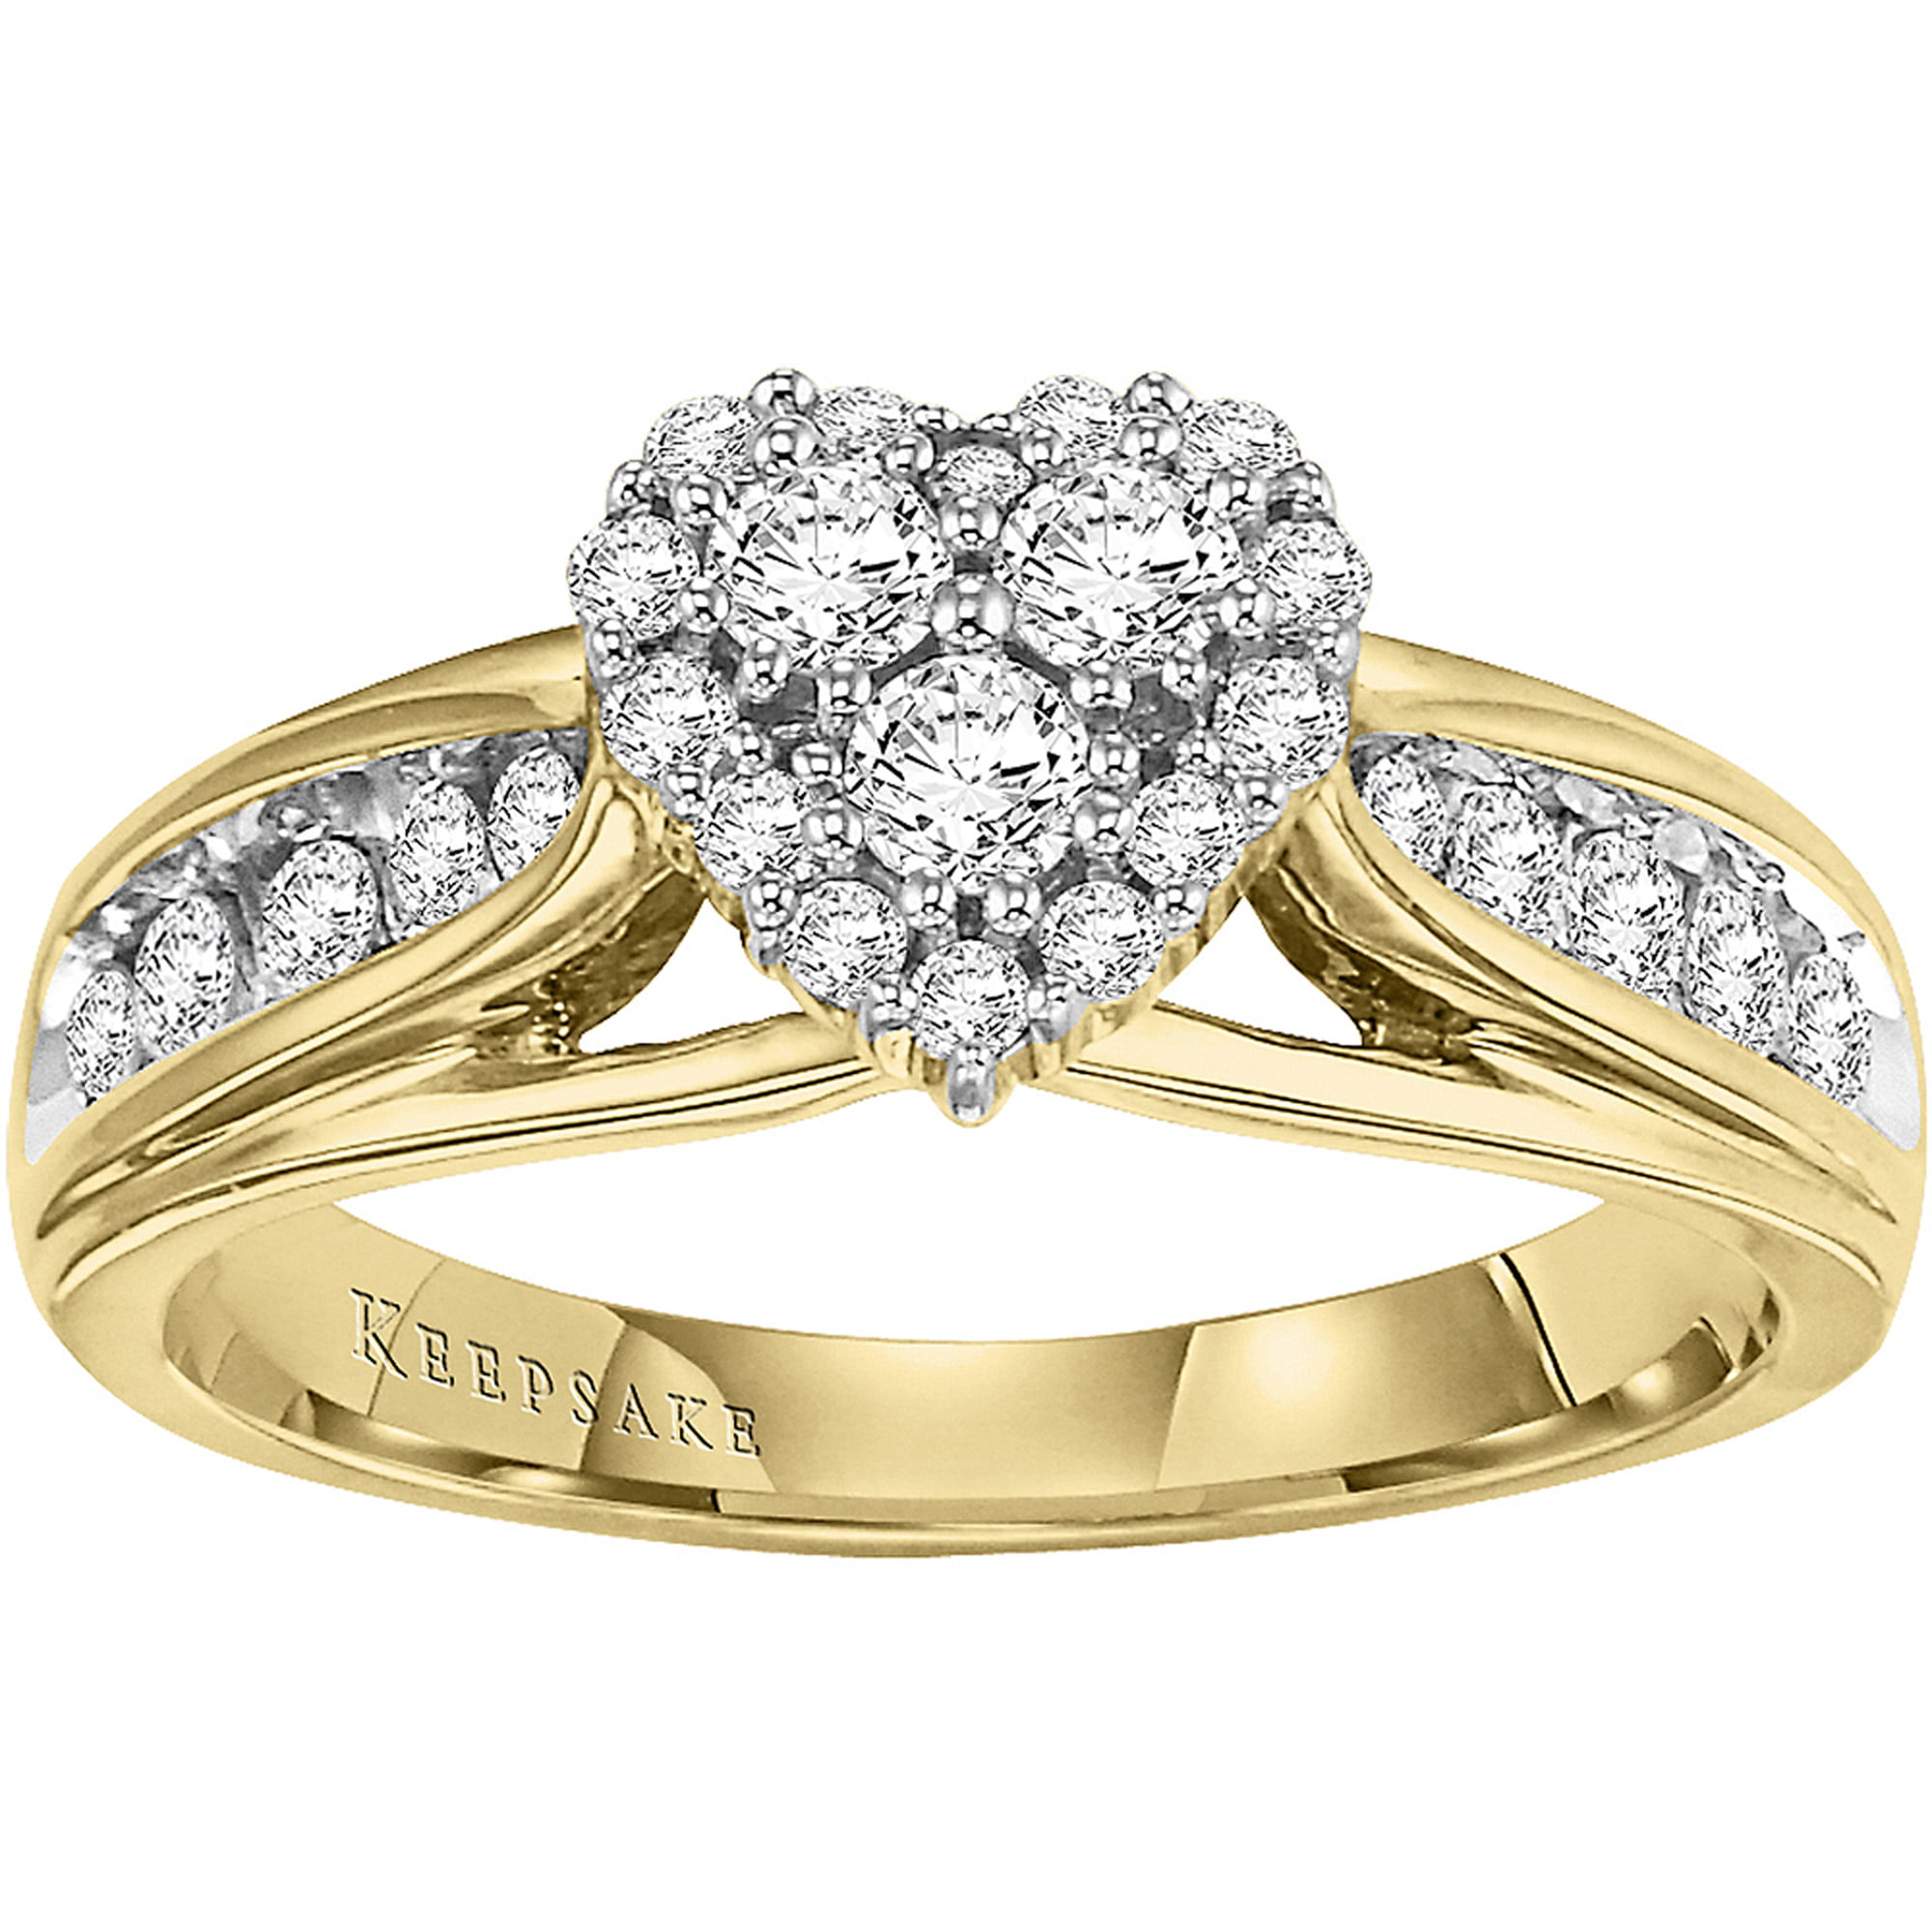 gold engagement looking keepsake gorgeous than this coast ier diamond in of elegant rings ever lingerie